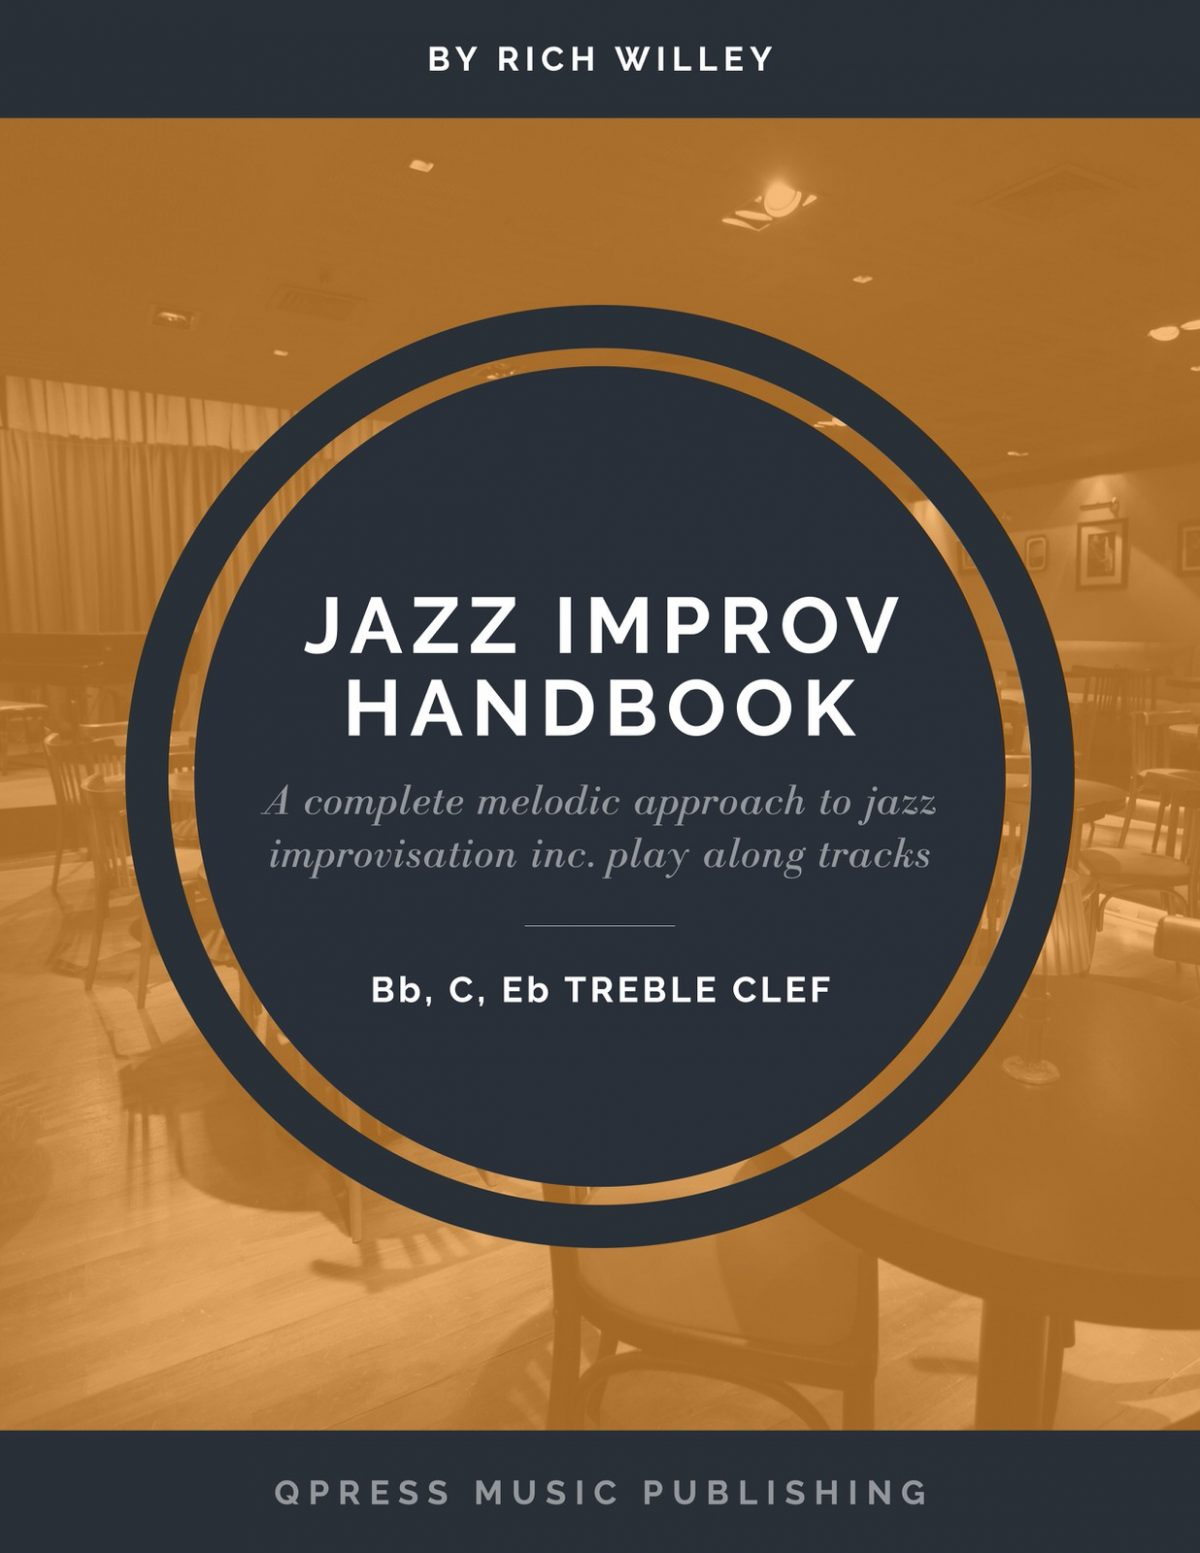 Willey, Jazz Improv Materials Handbook Complete-p001